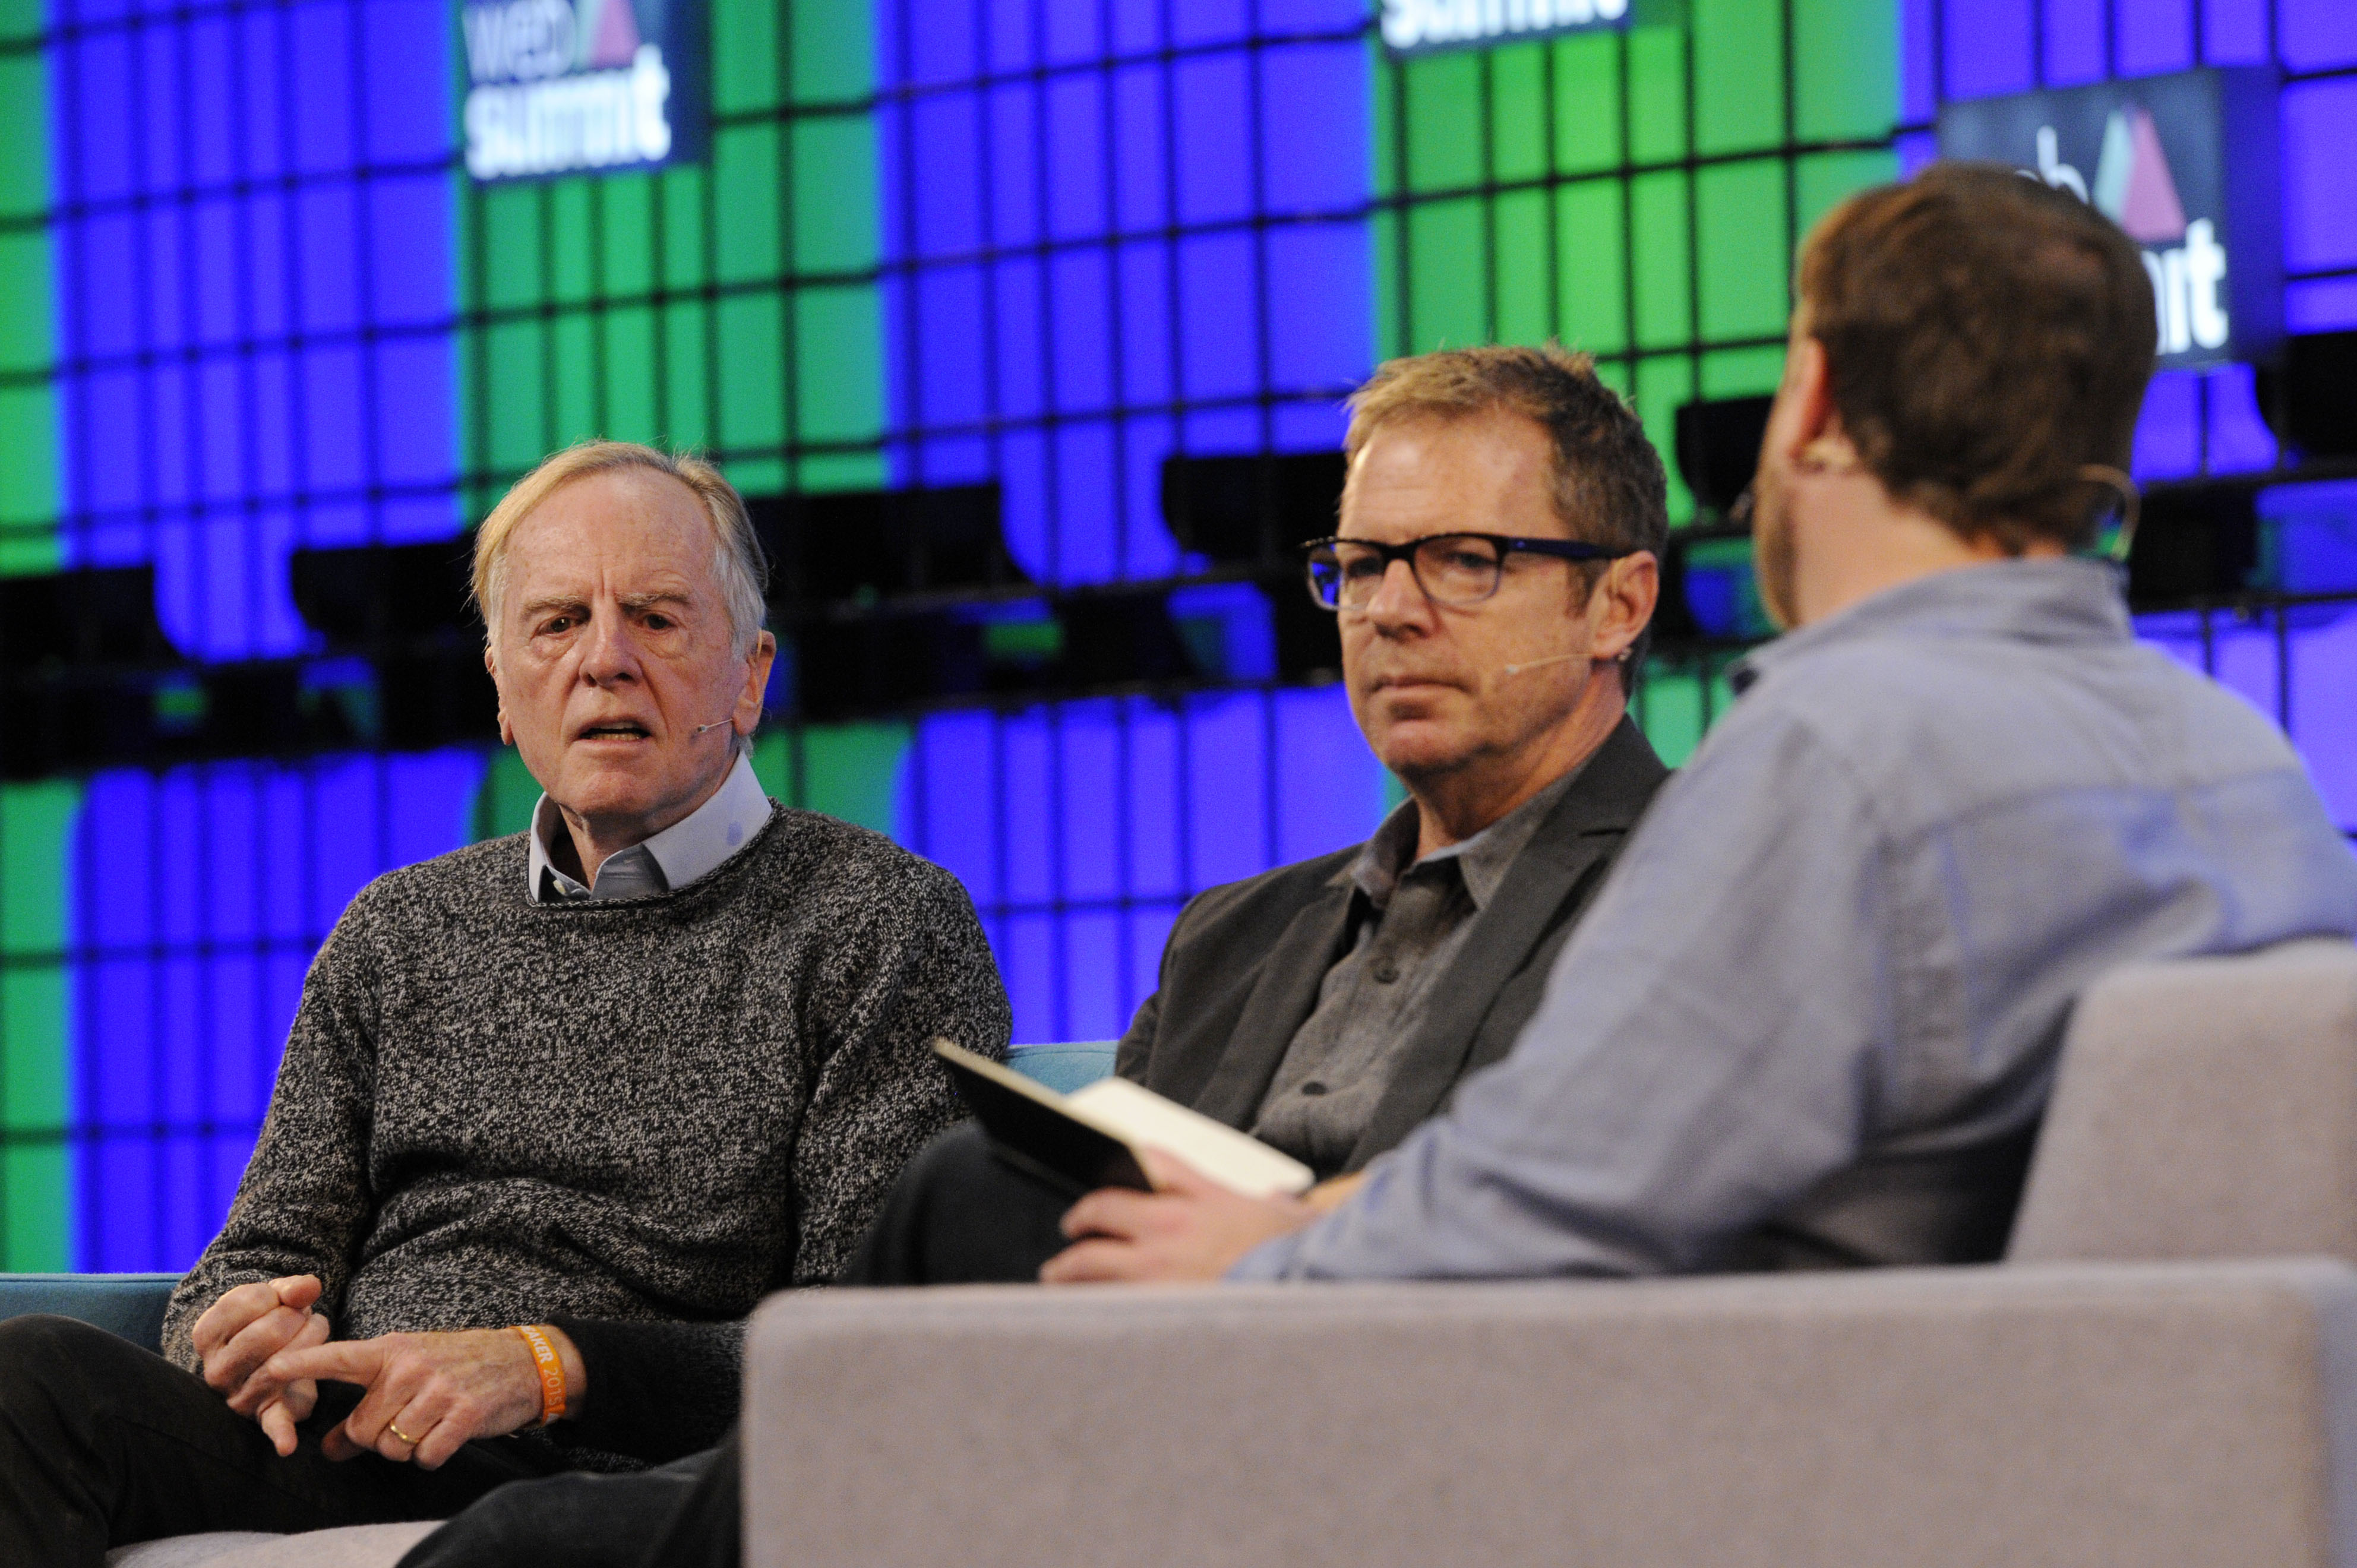 Speakers At The 2015 Web Summit